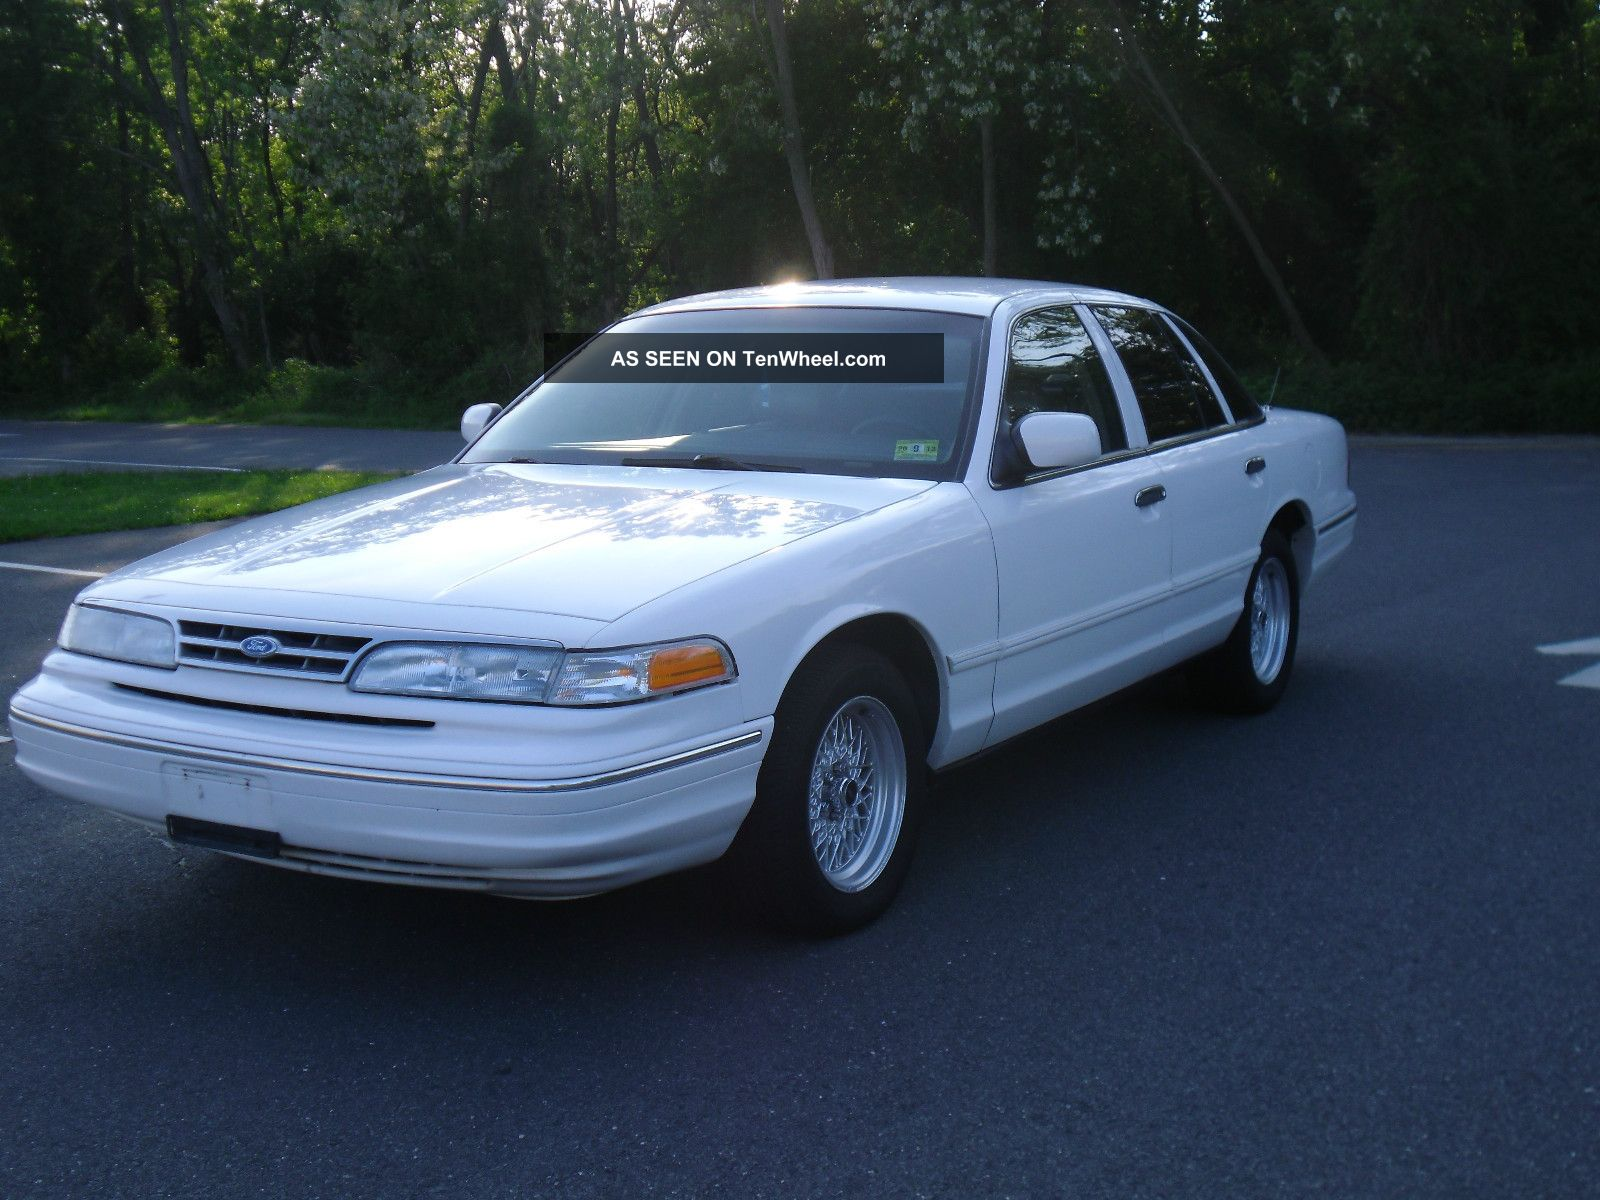 1996 Ford Crown Victoria 88k Title Crown Vic Police Interceptor Nj Cheap Crown Victoria photo